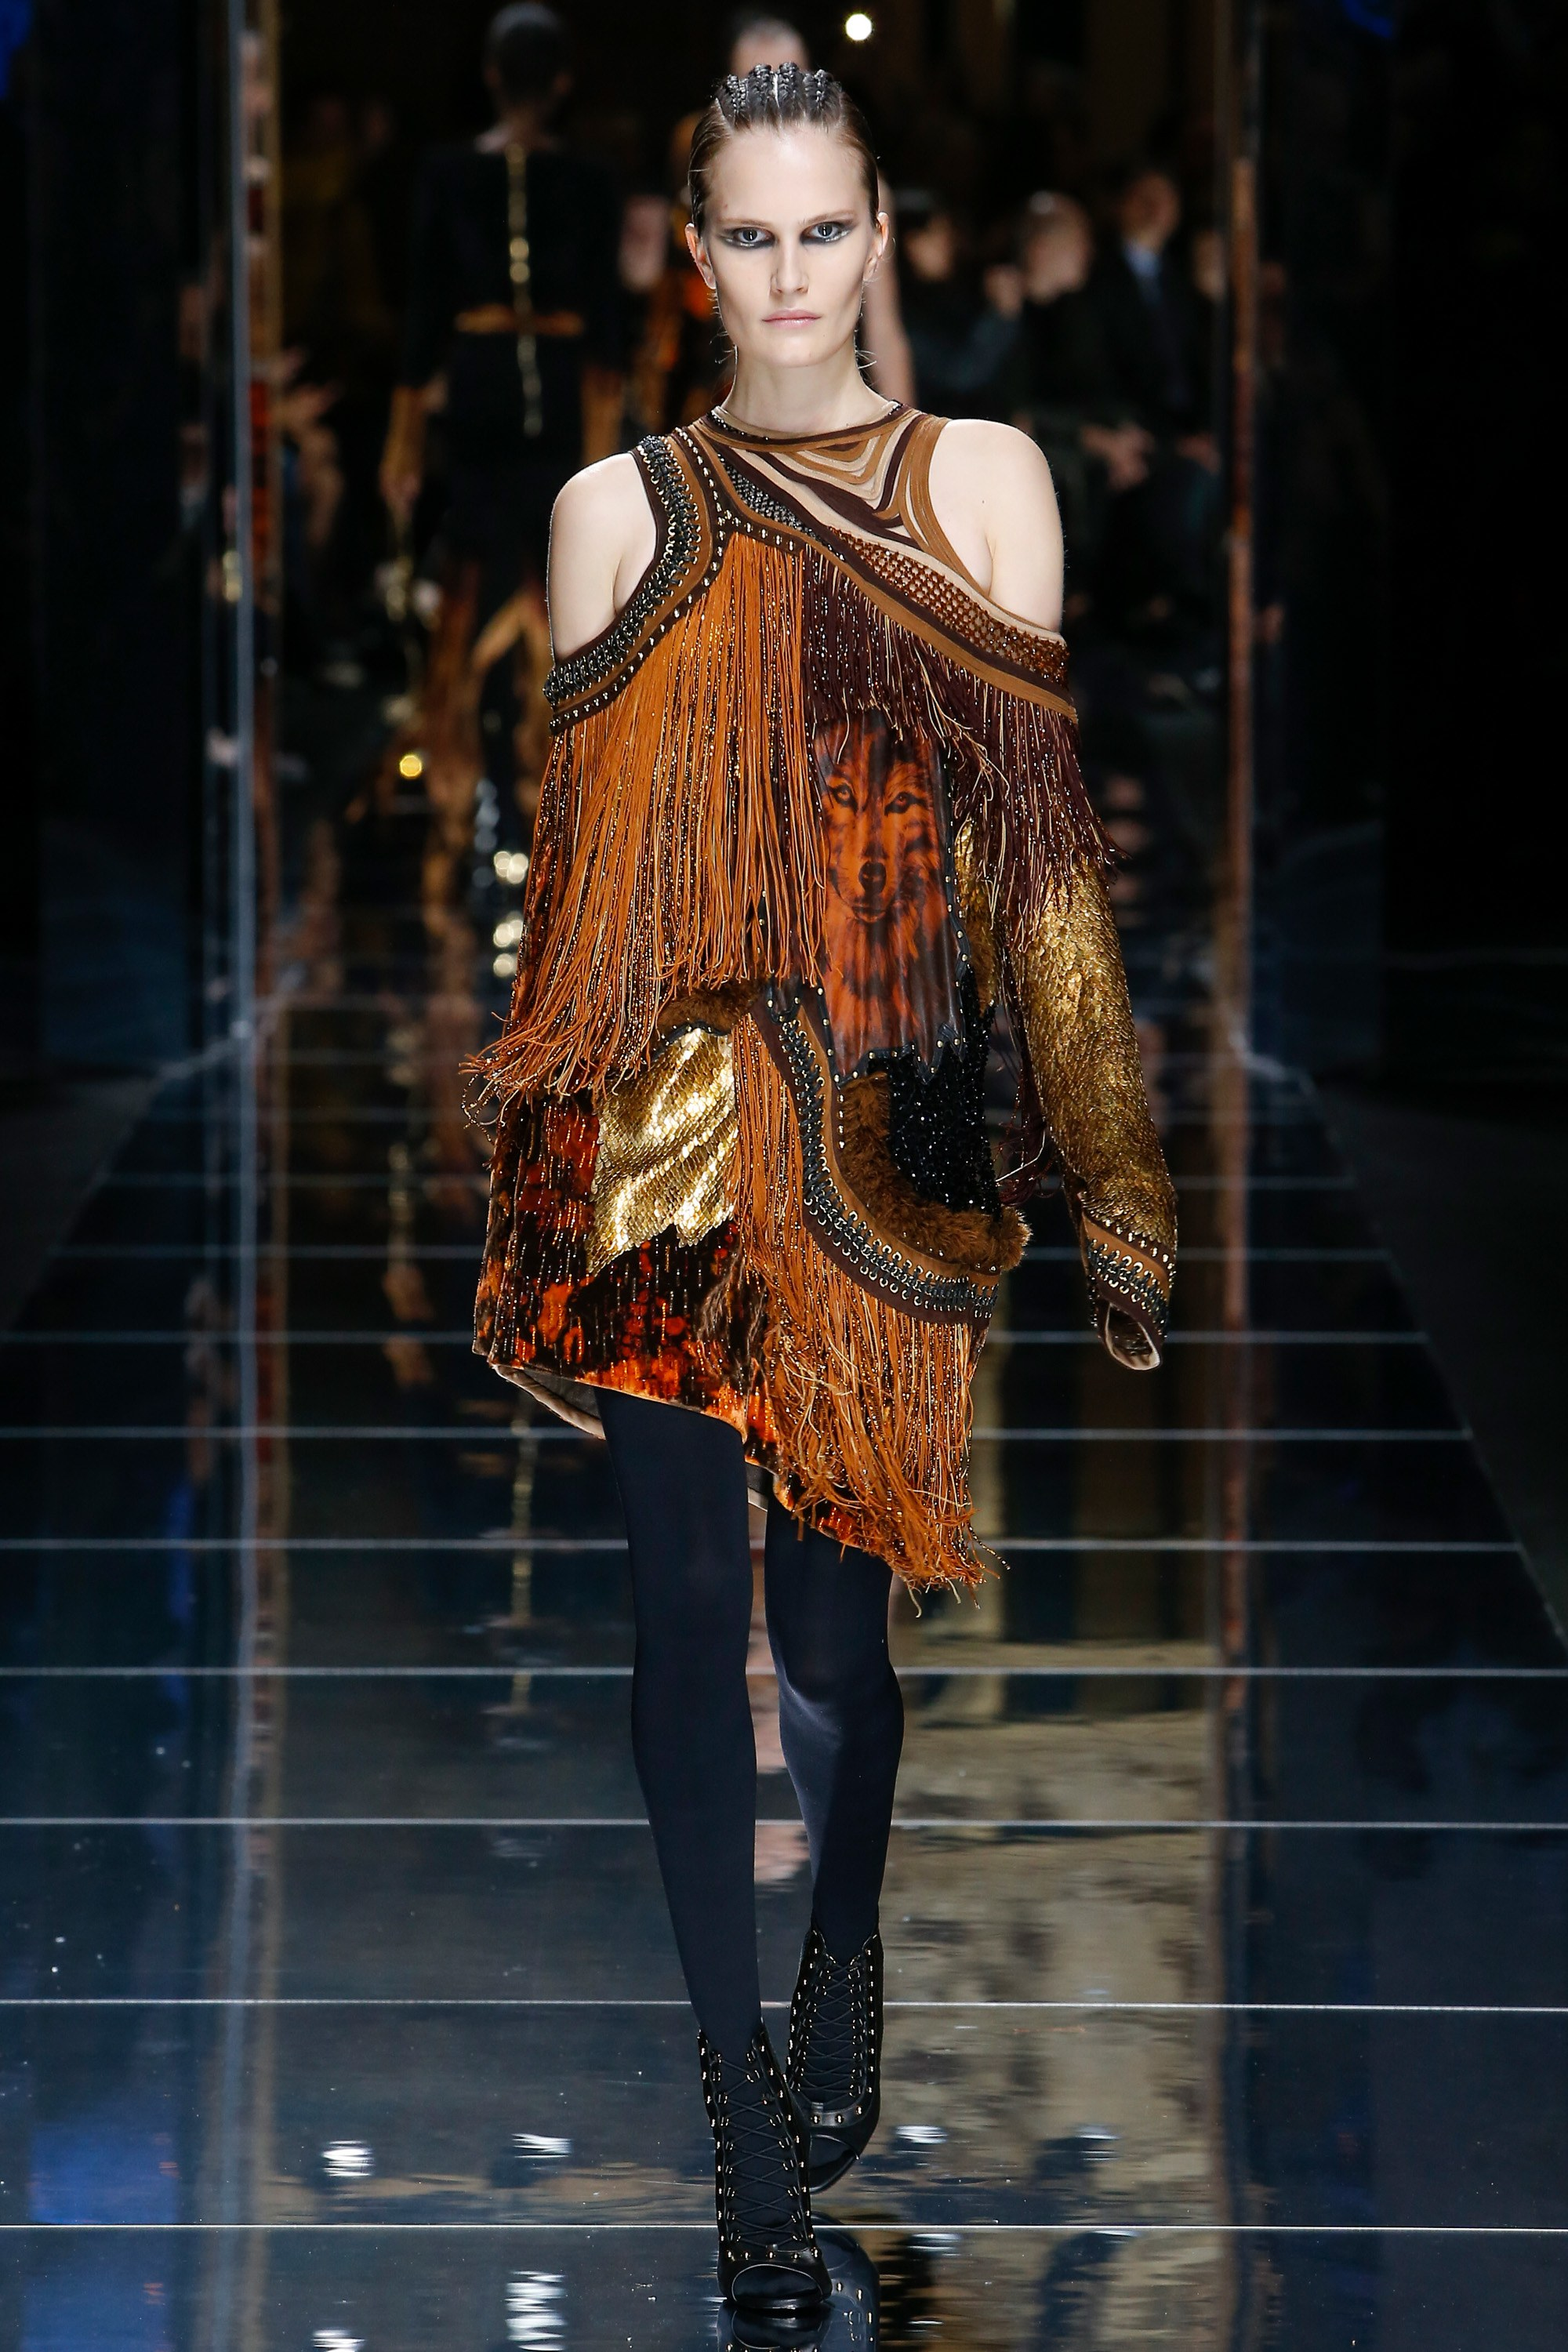 BALMAIN -  loved every piece in this collection, each piece embellished to within an inch of it's life with flashes of gilt and gold..... inspired here by Fringe in suede and leather